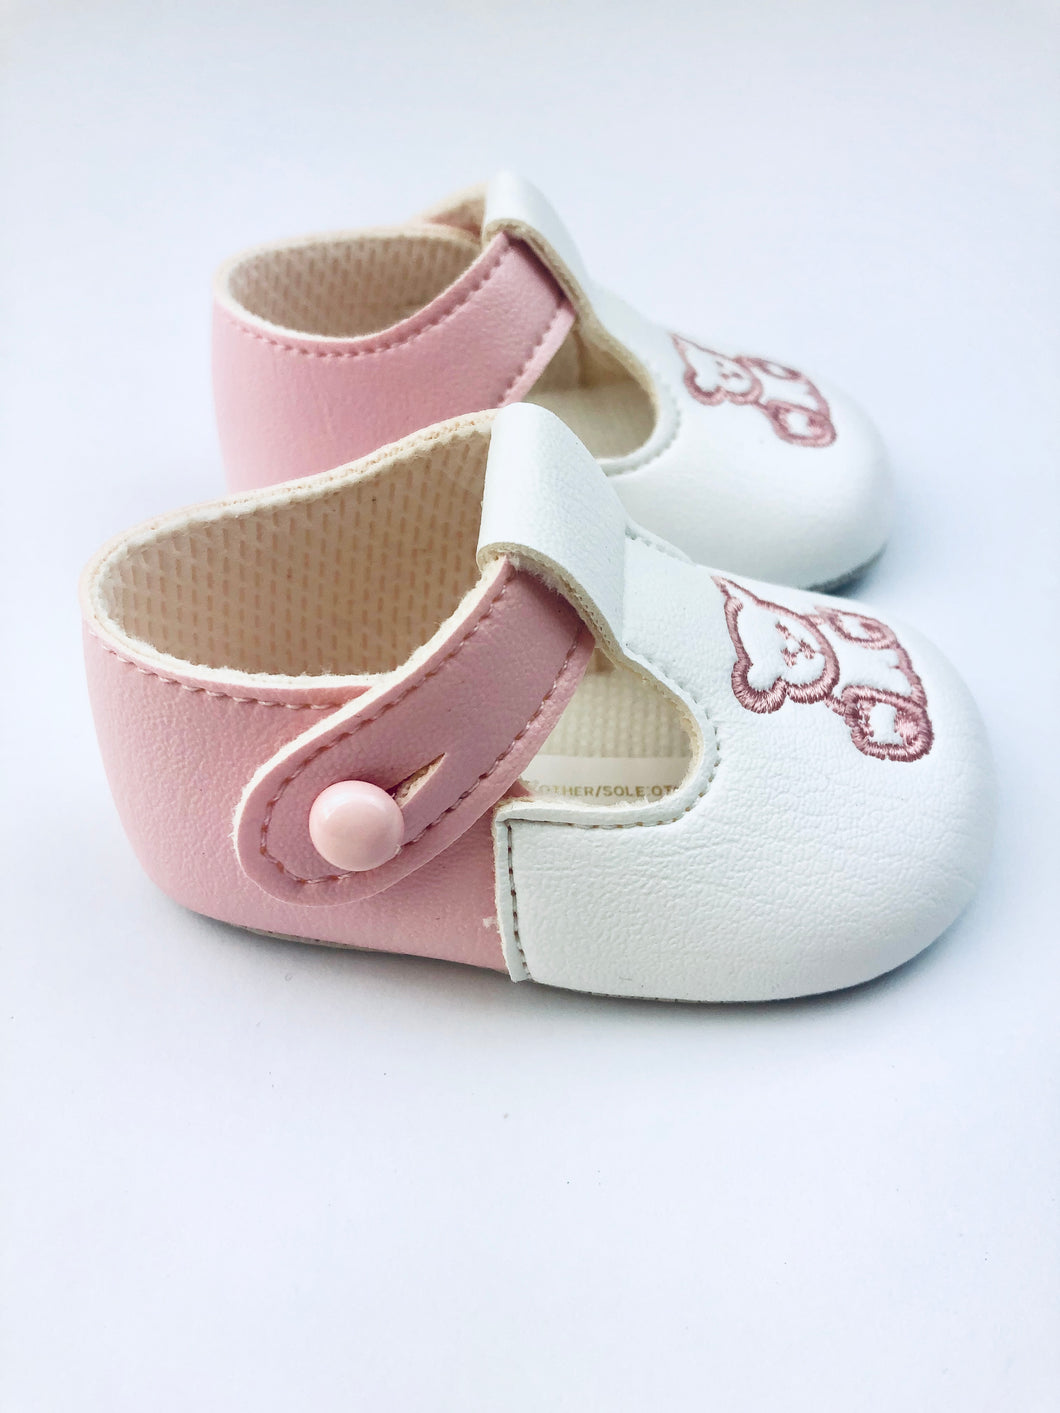 Pram Shoe - Tilly's Picnic